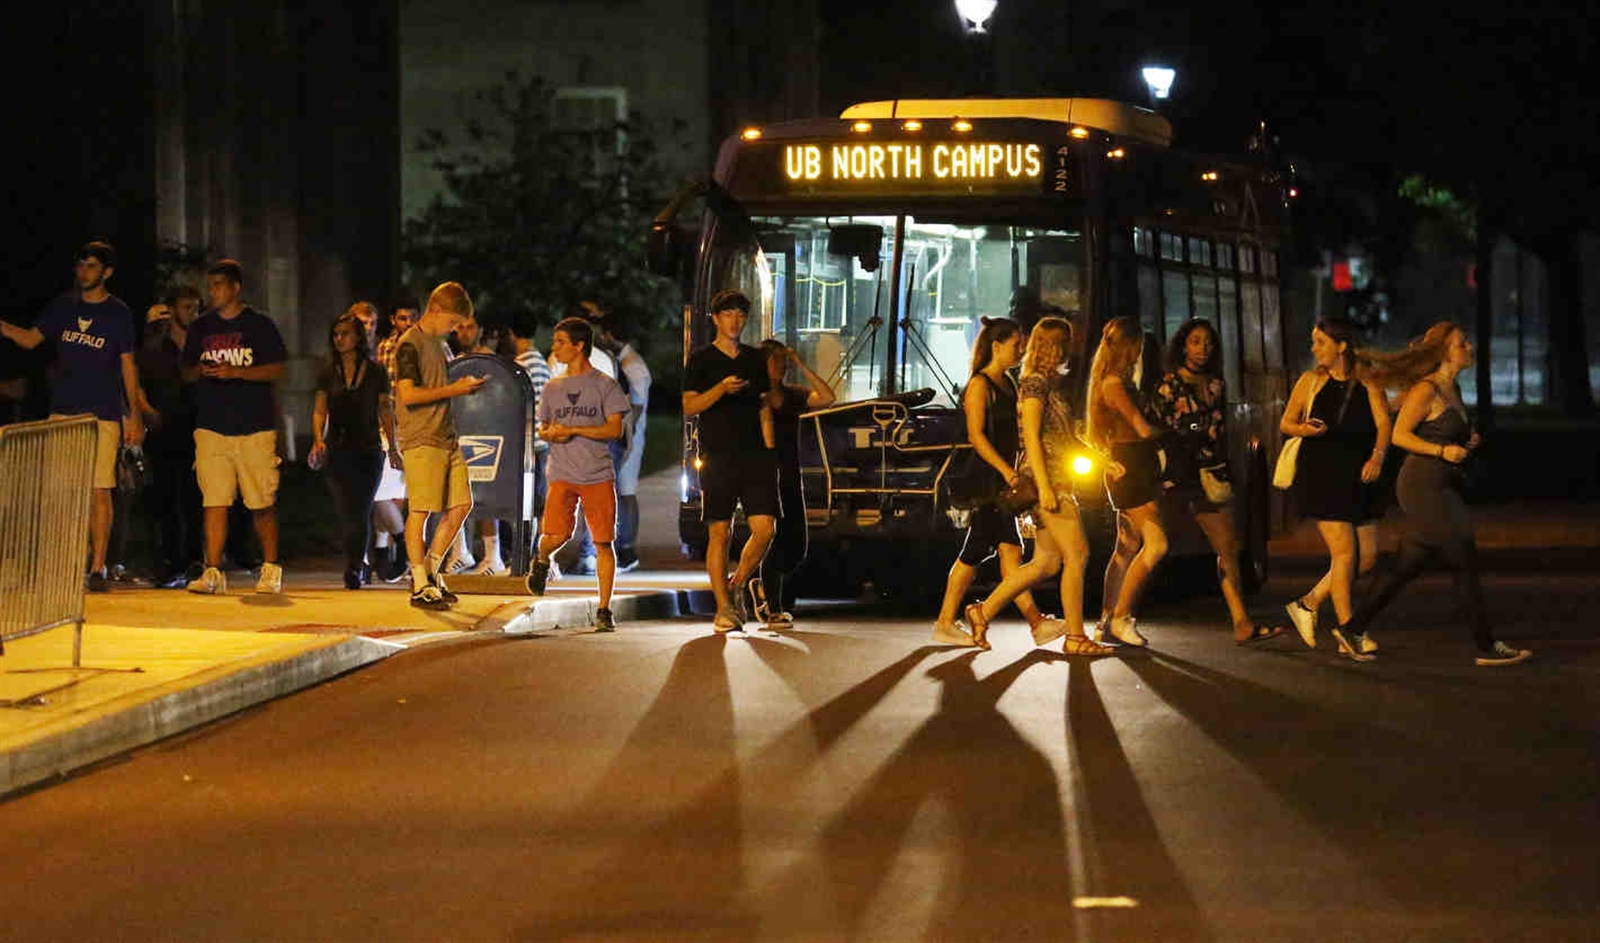 Busloads of students arrive at UB South Campus from the North Campus. Between 11 p.m. and midnight, buses were arriving about every three to five minutes.